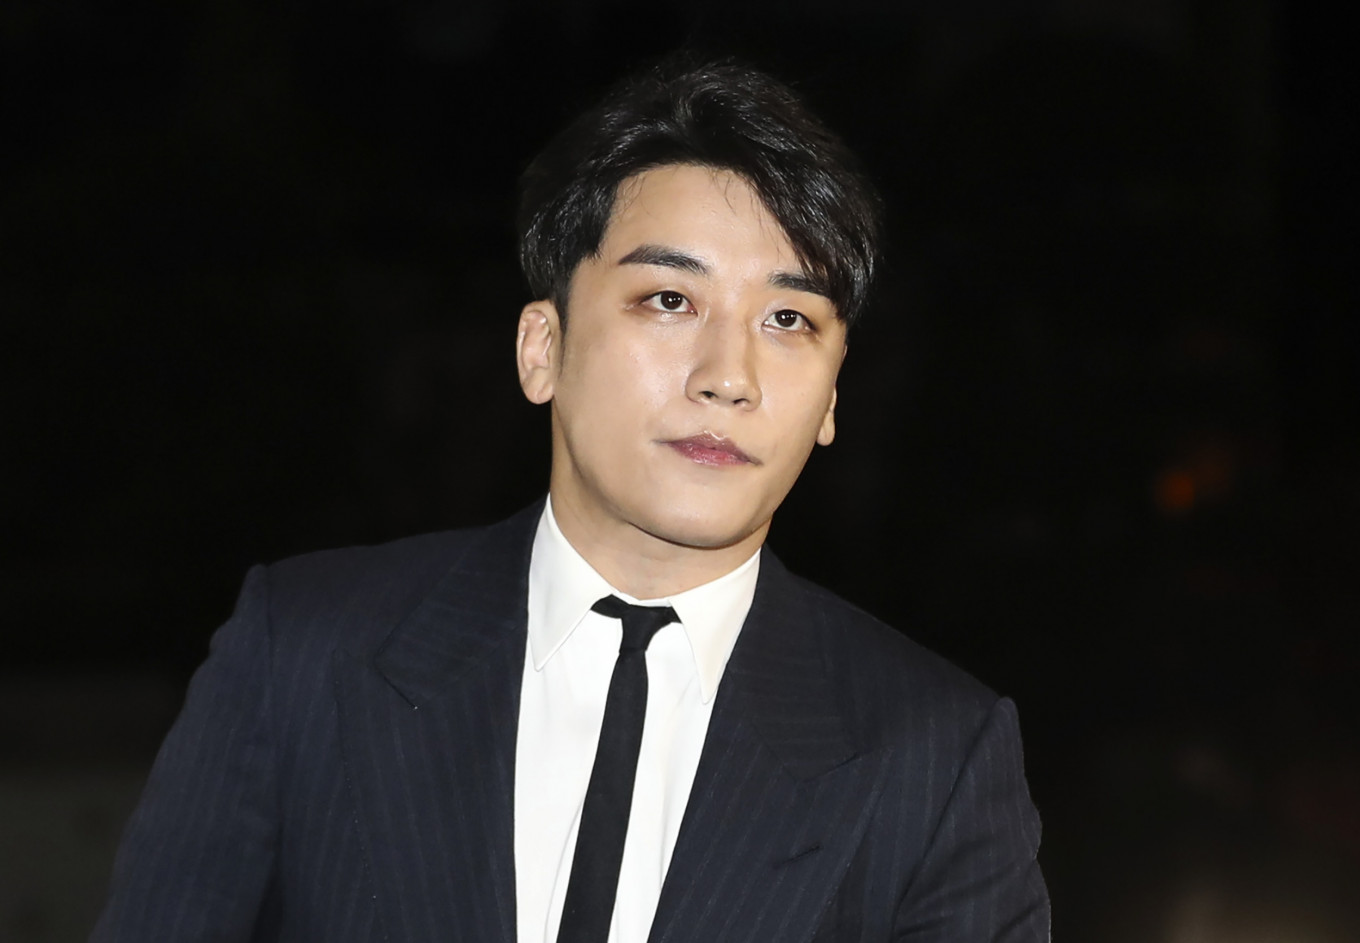 Sex, money and drugs: The controversy that ended Seungri's career explained